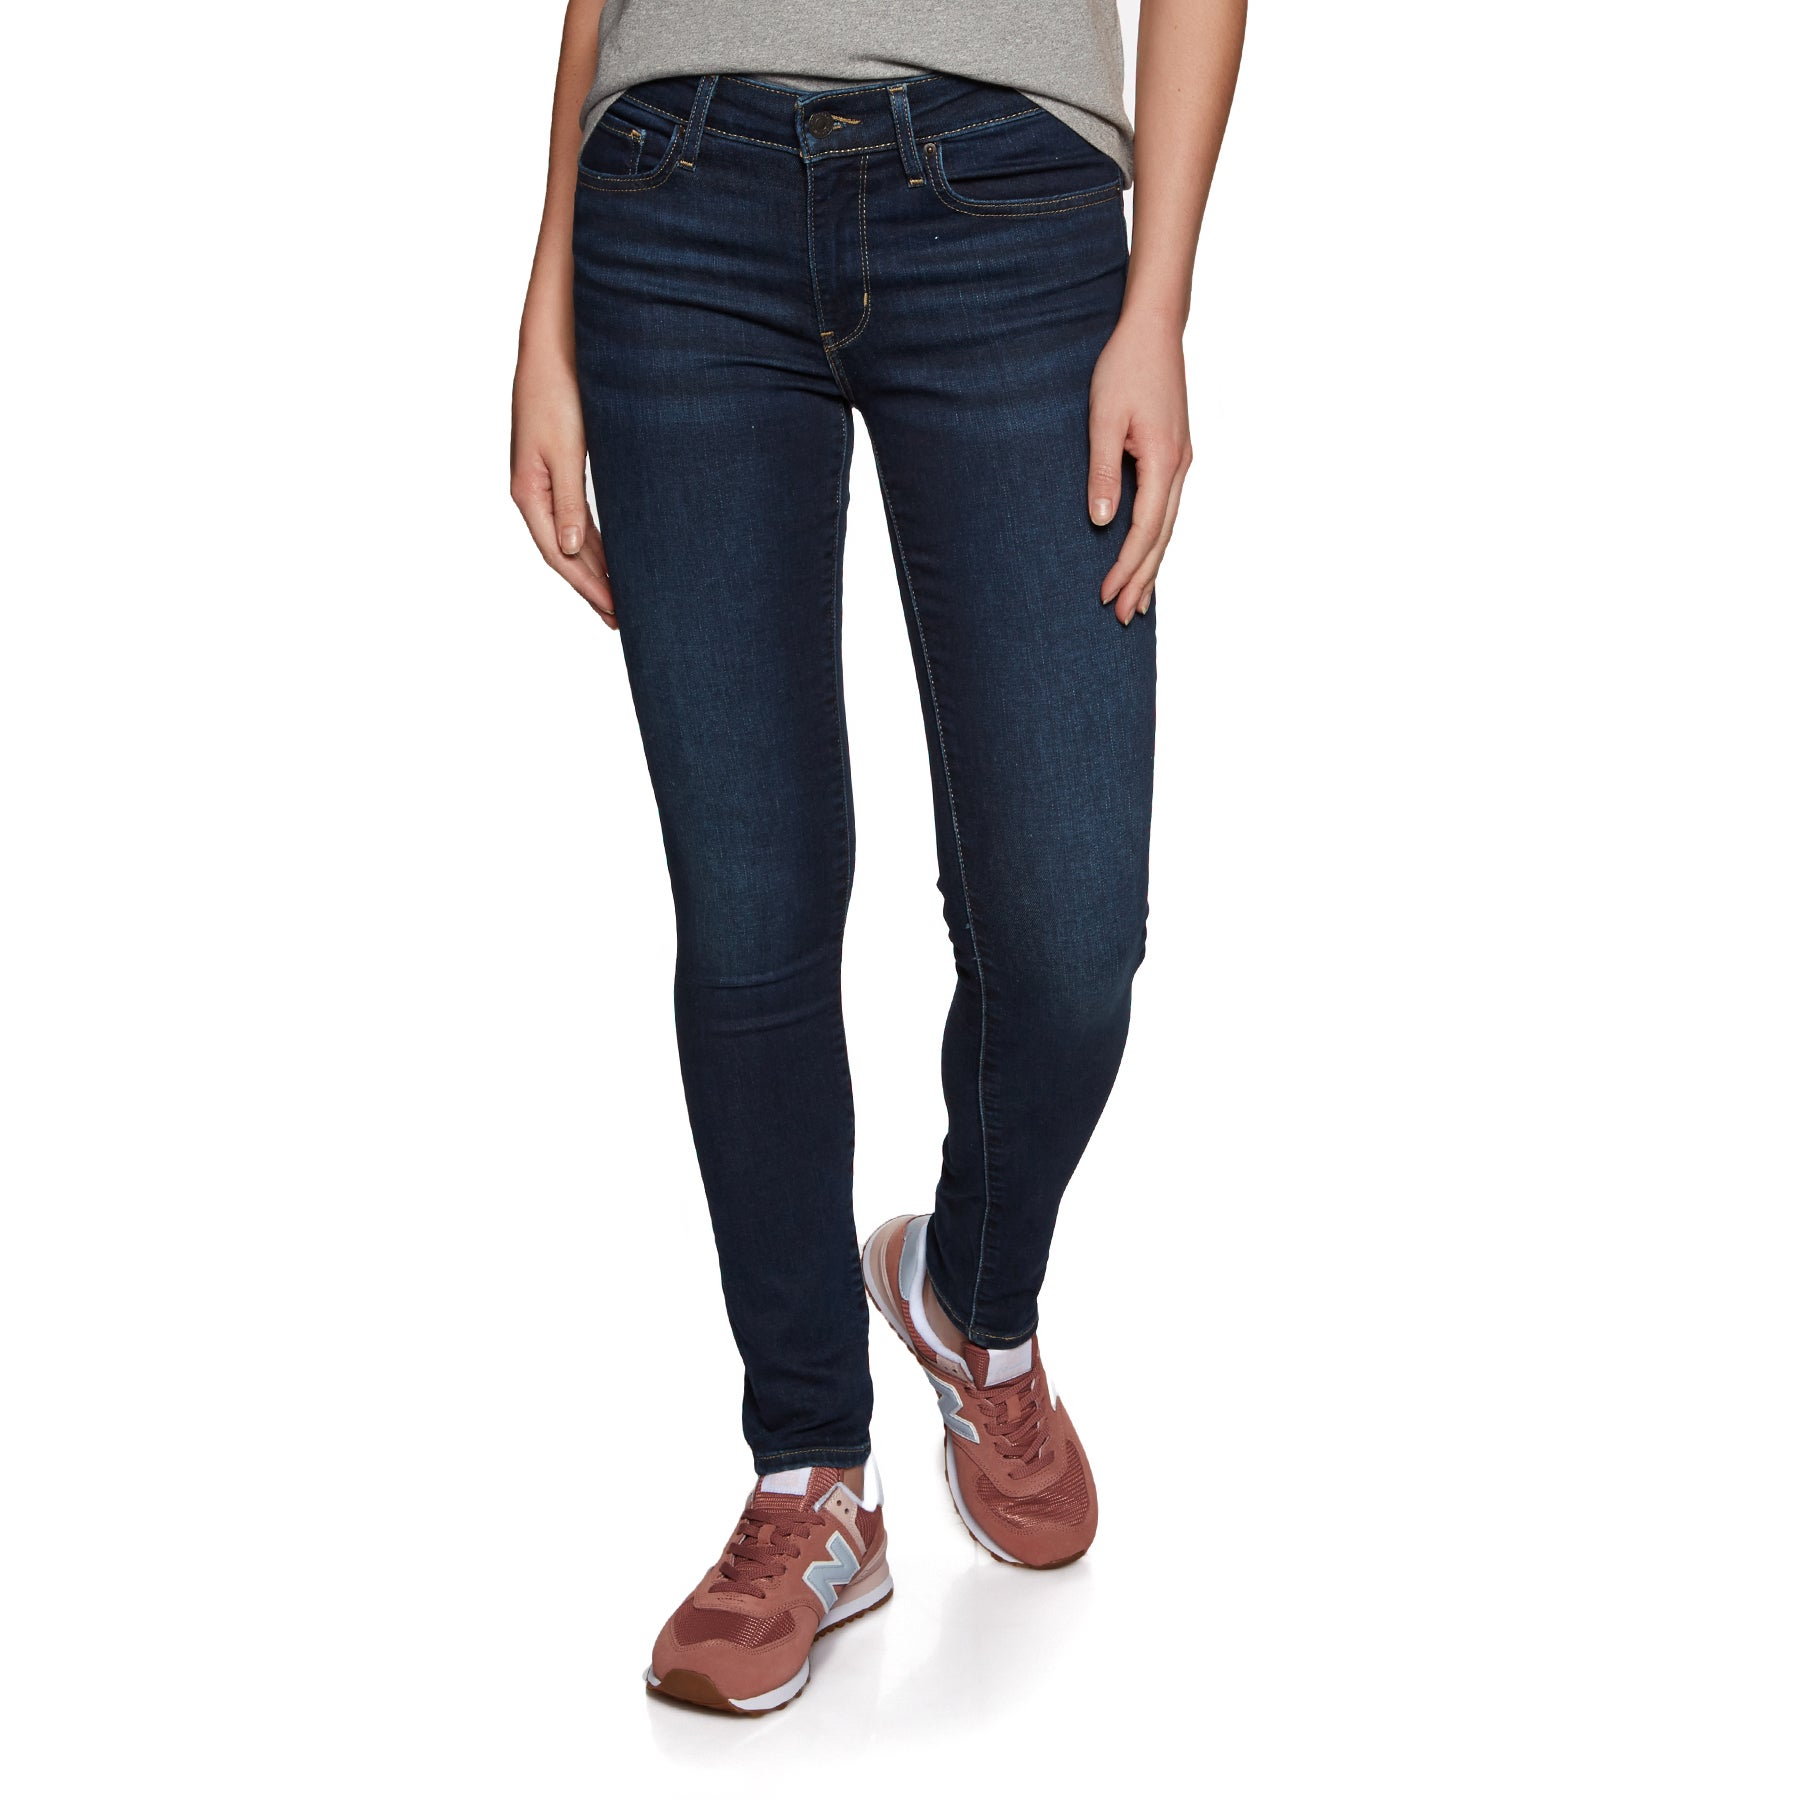 Jeans Femme Levis 711 Skinny - Role Model